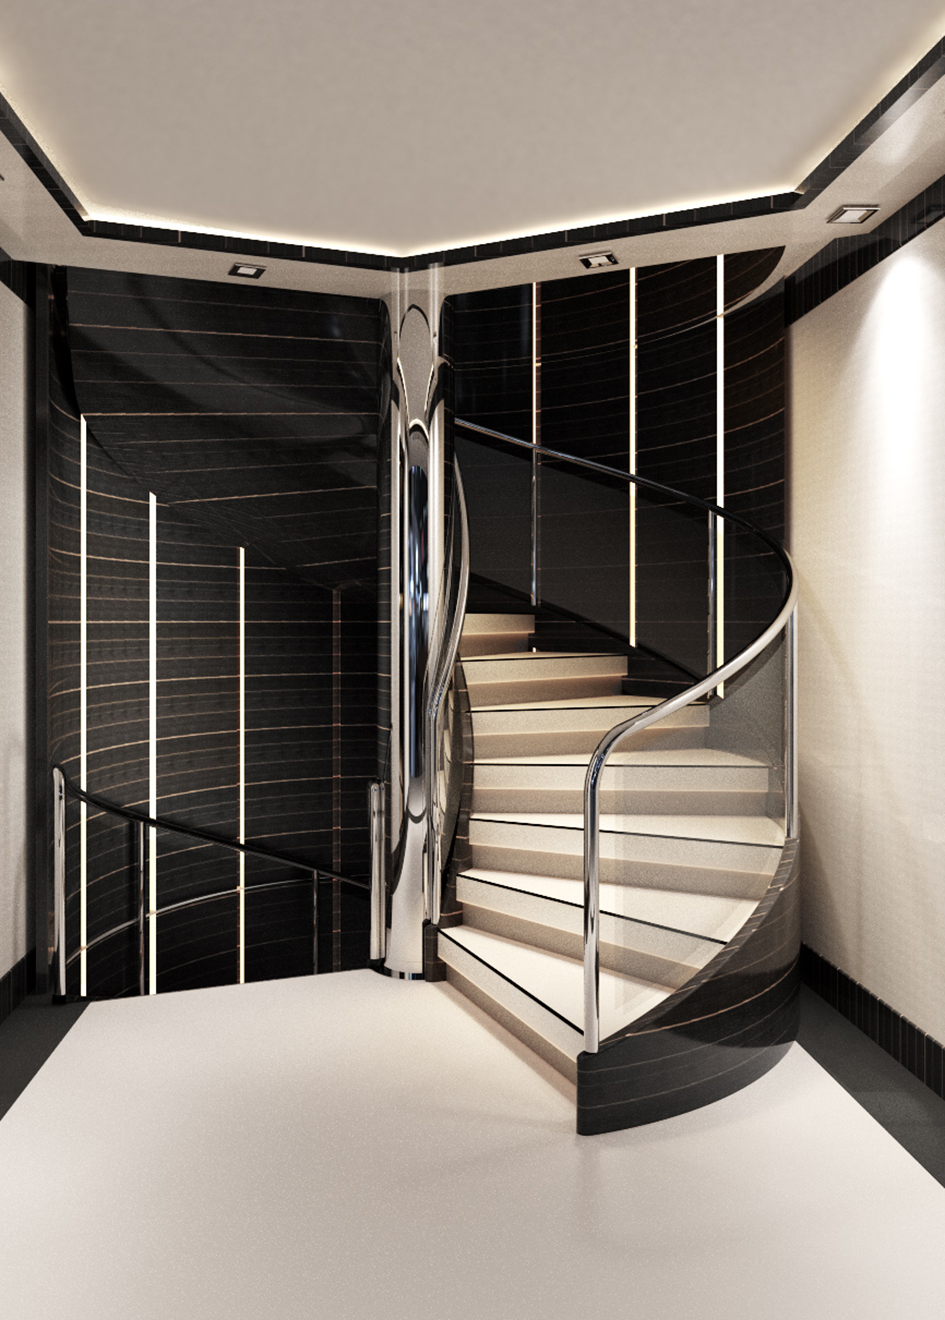 the-staircase-of-the-golden-yacht-superyacht-omathilde